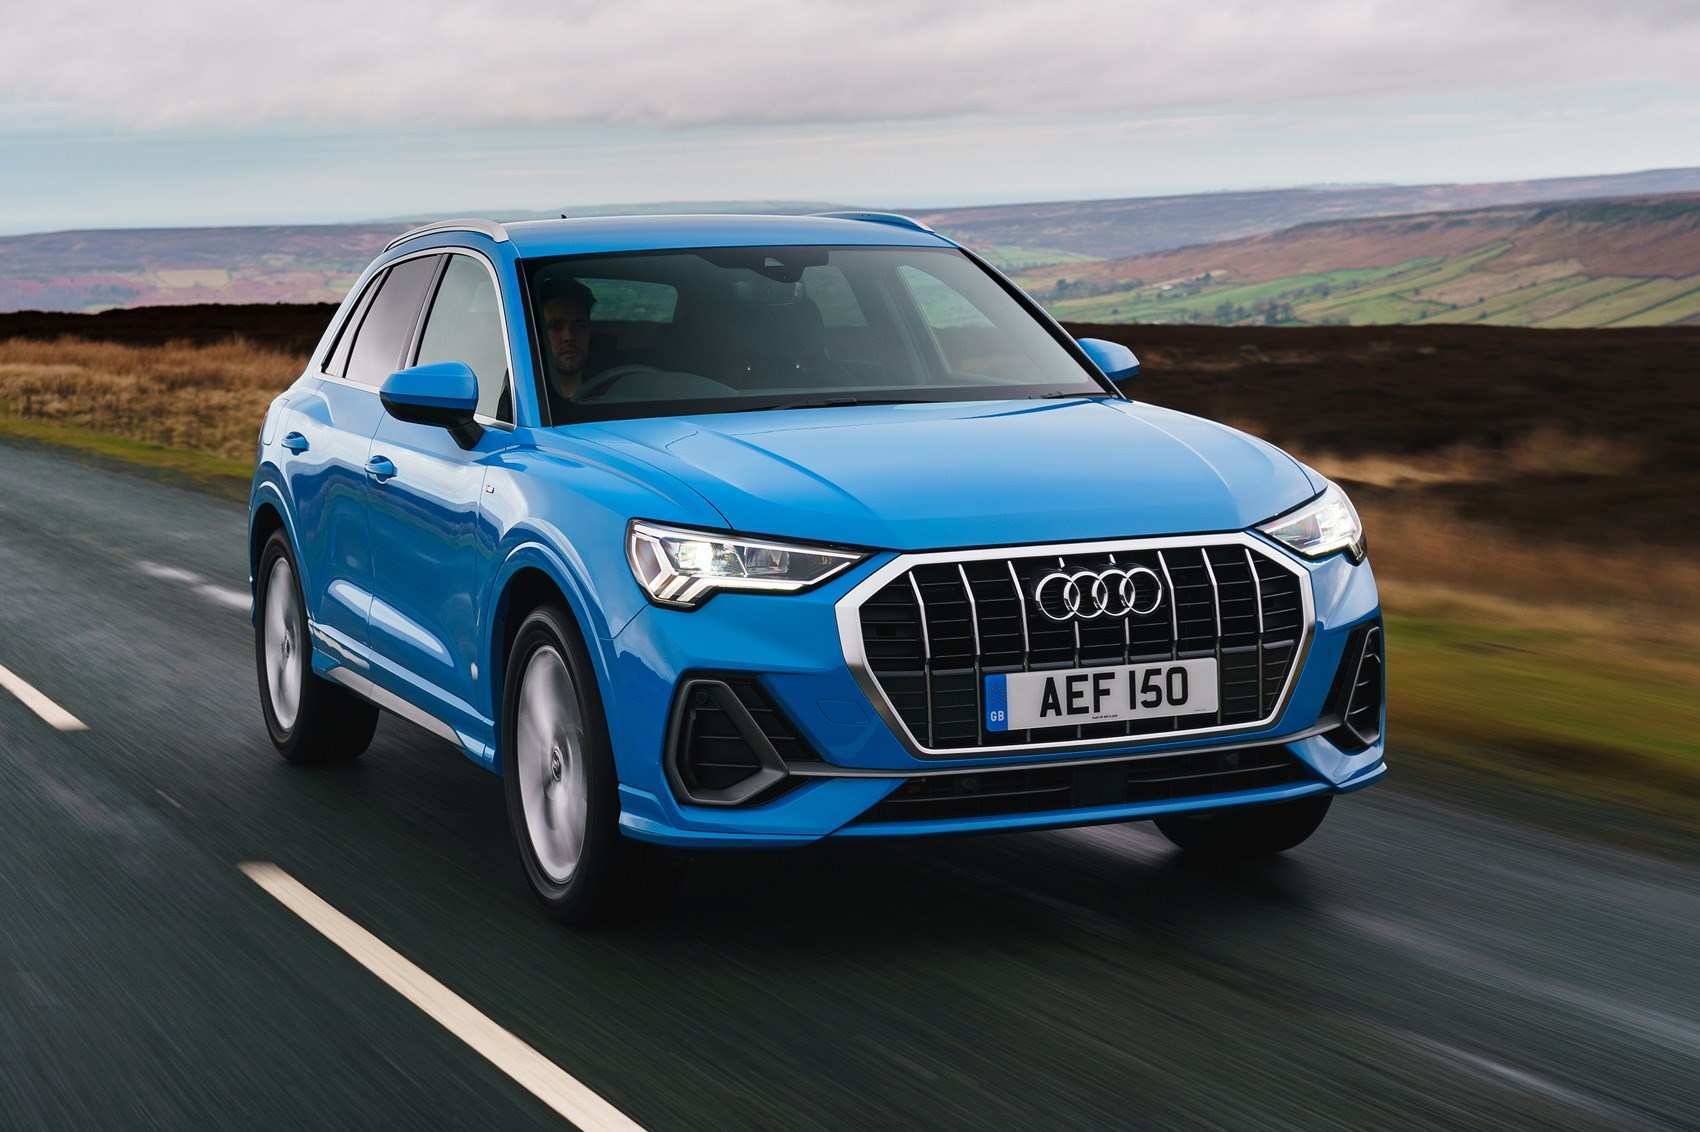 75 Gallery of New Audi Q3 2019 Hybrid Price Images with New Audi Q3 2019 Hybrid Price